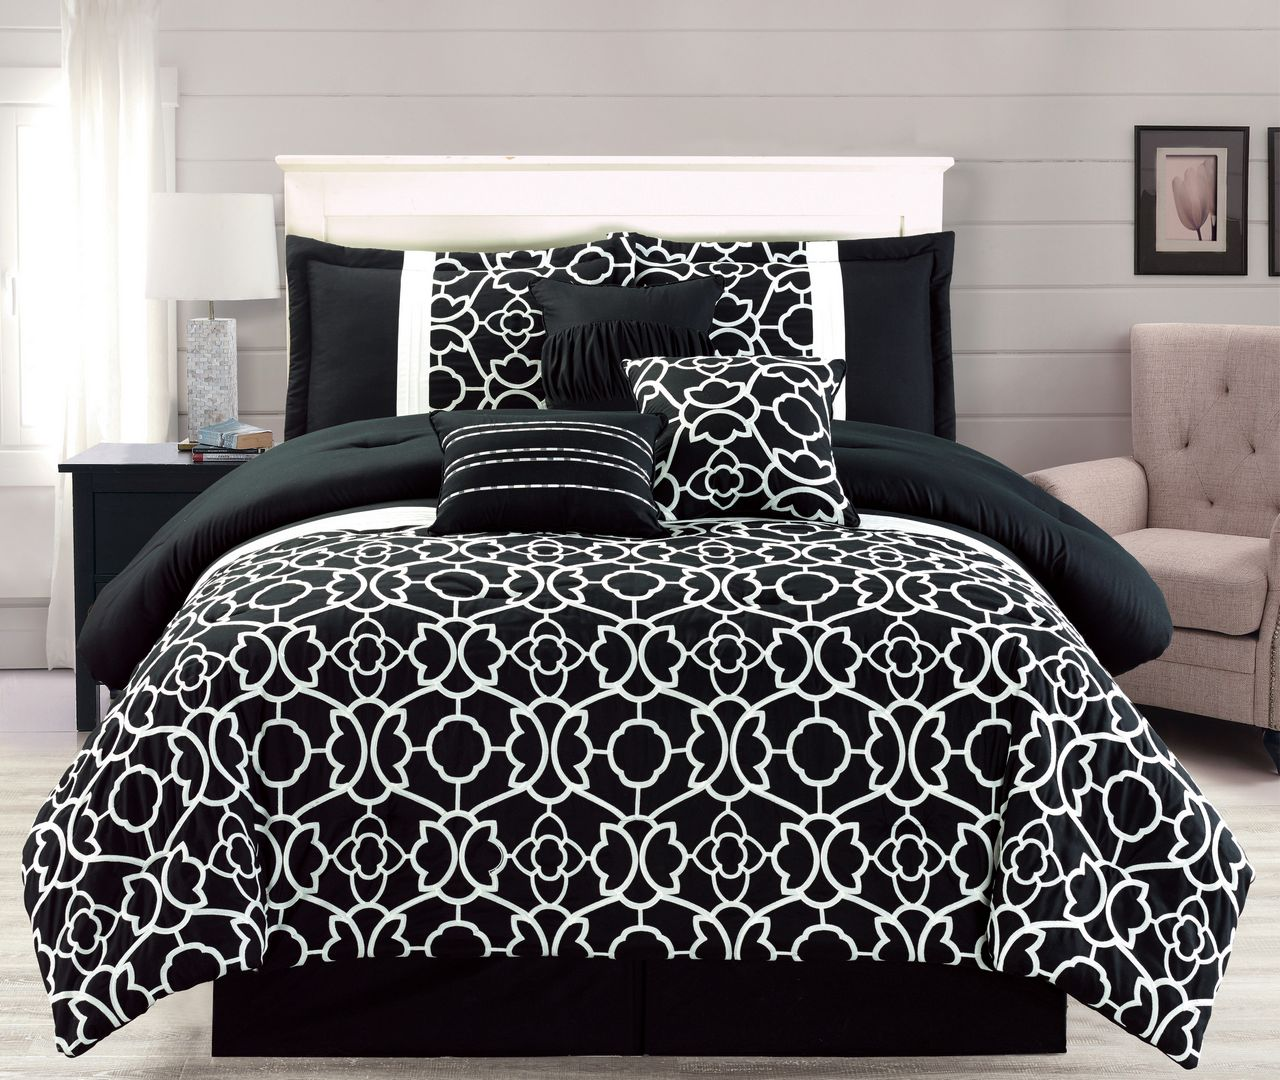 7 Piece Ladera Black Comforter Set